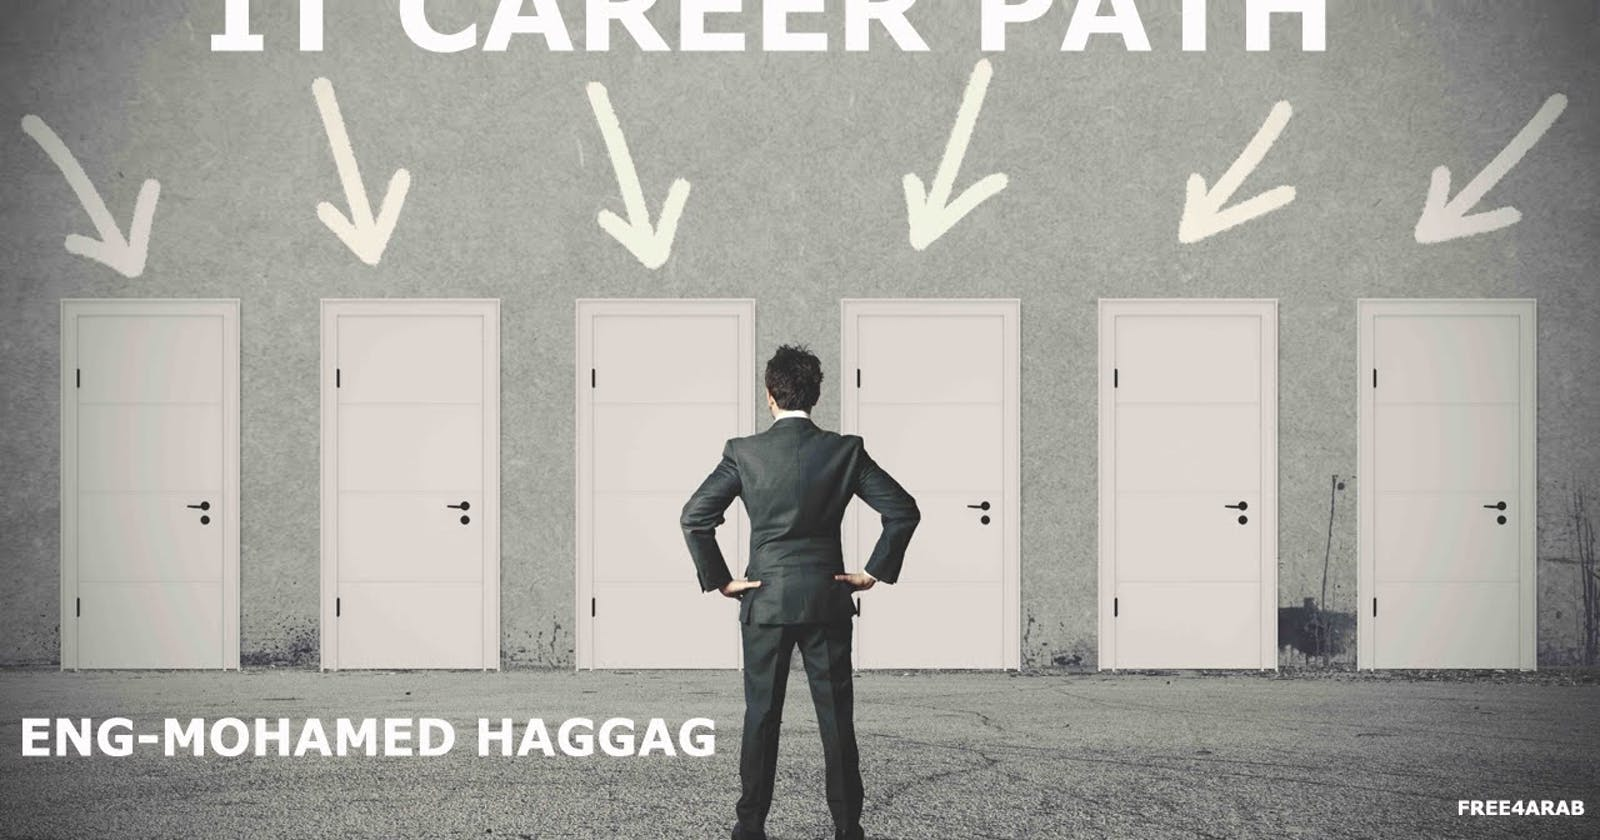 Looking Out For Career in Tech?